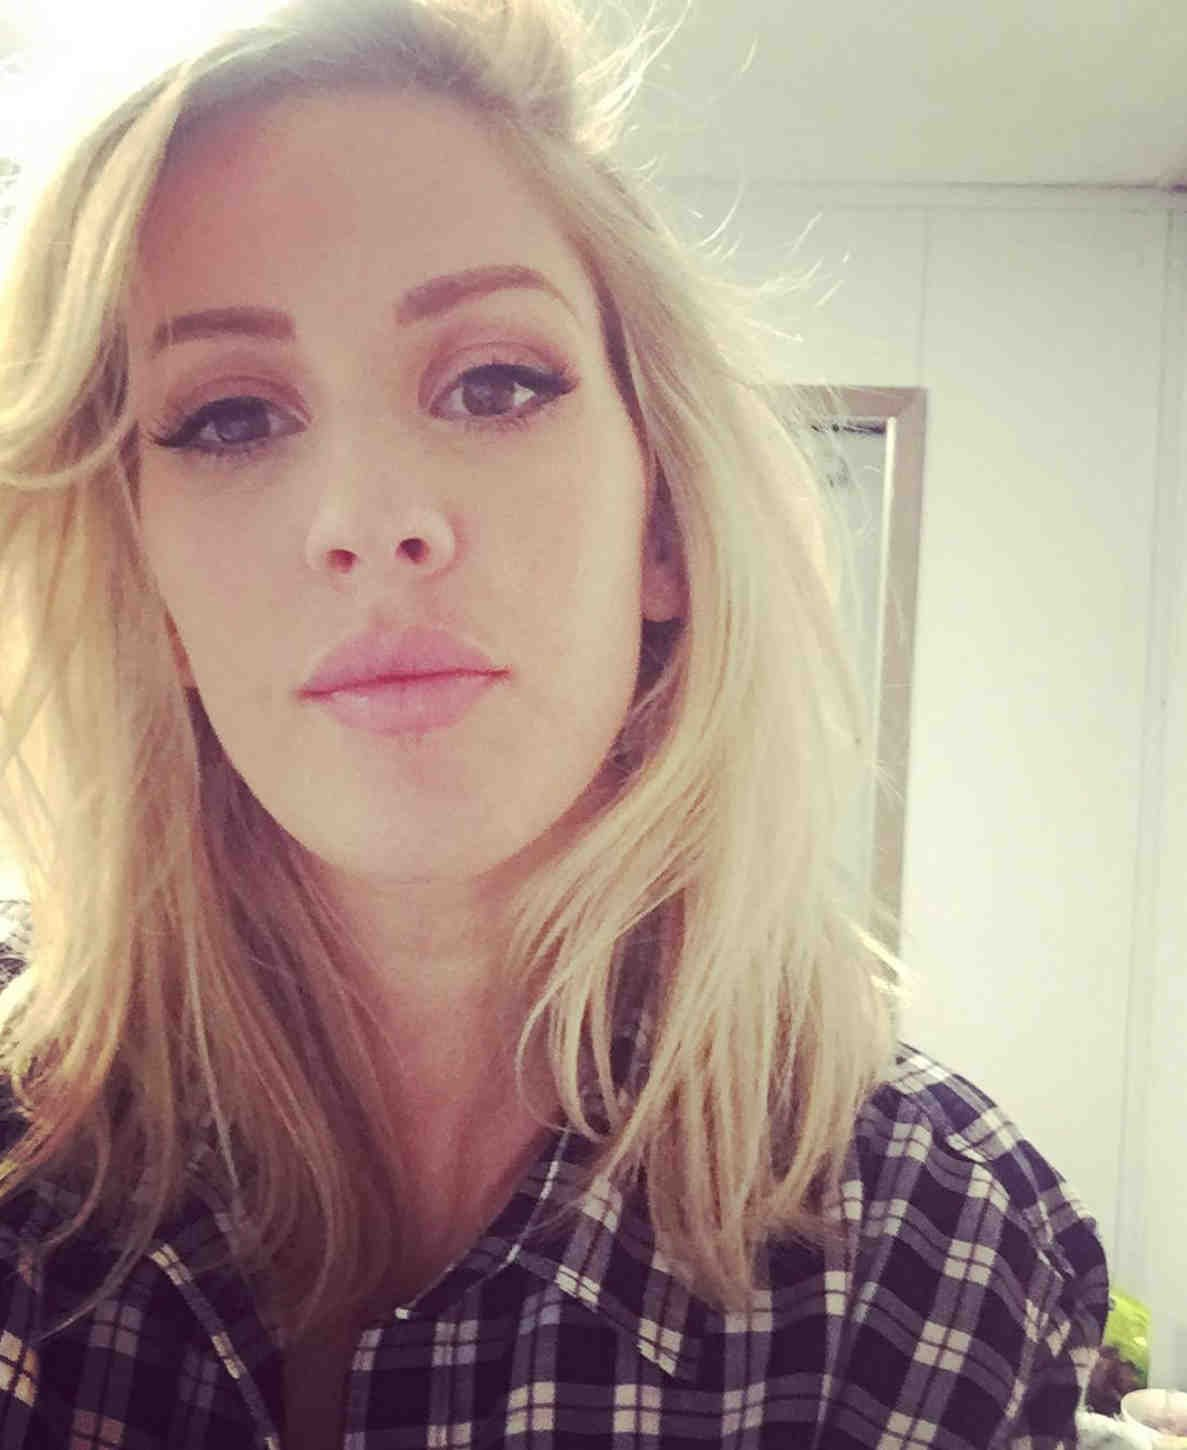 Ellie Goulding admits to cognitive behavioural therapy to battle crippling panic attacks